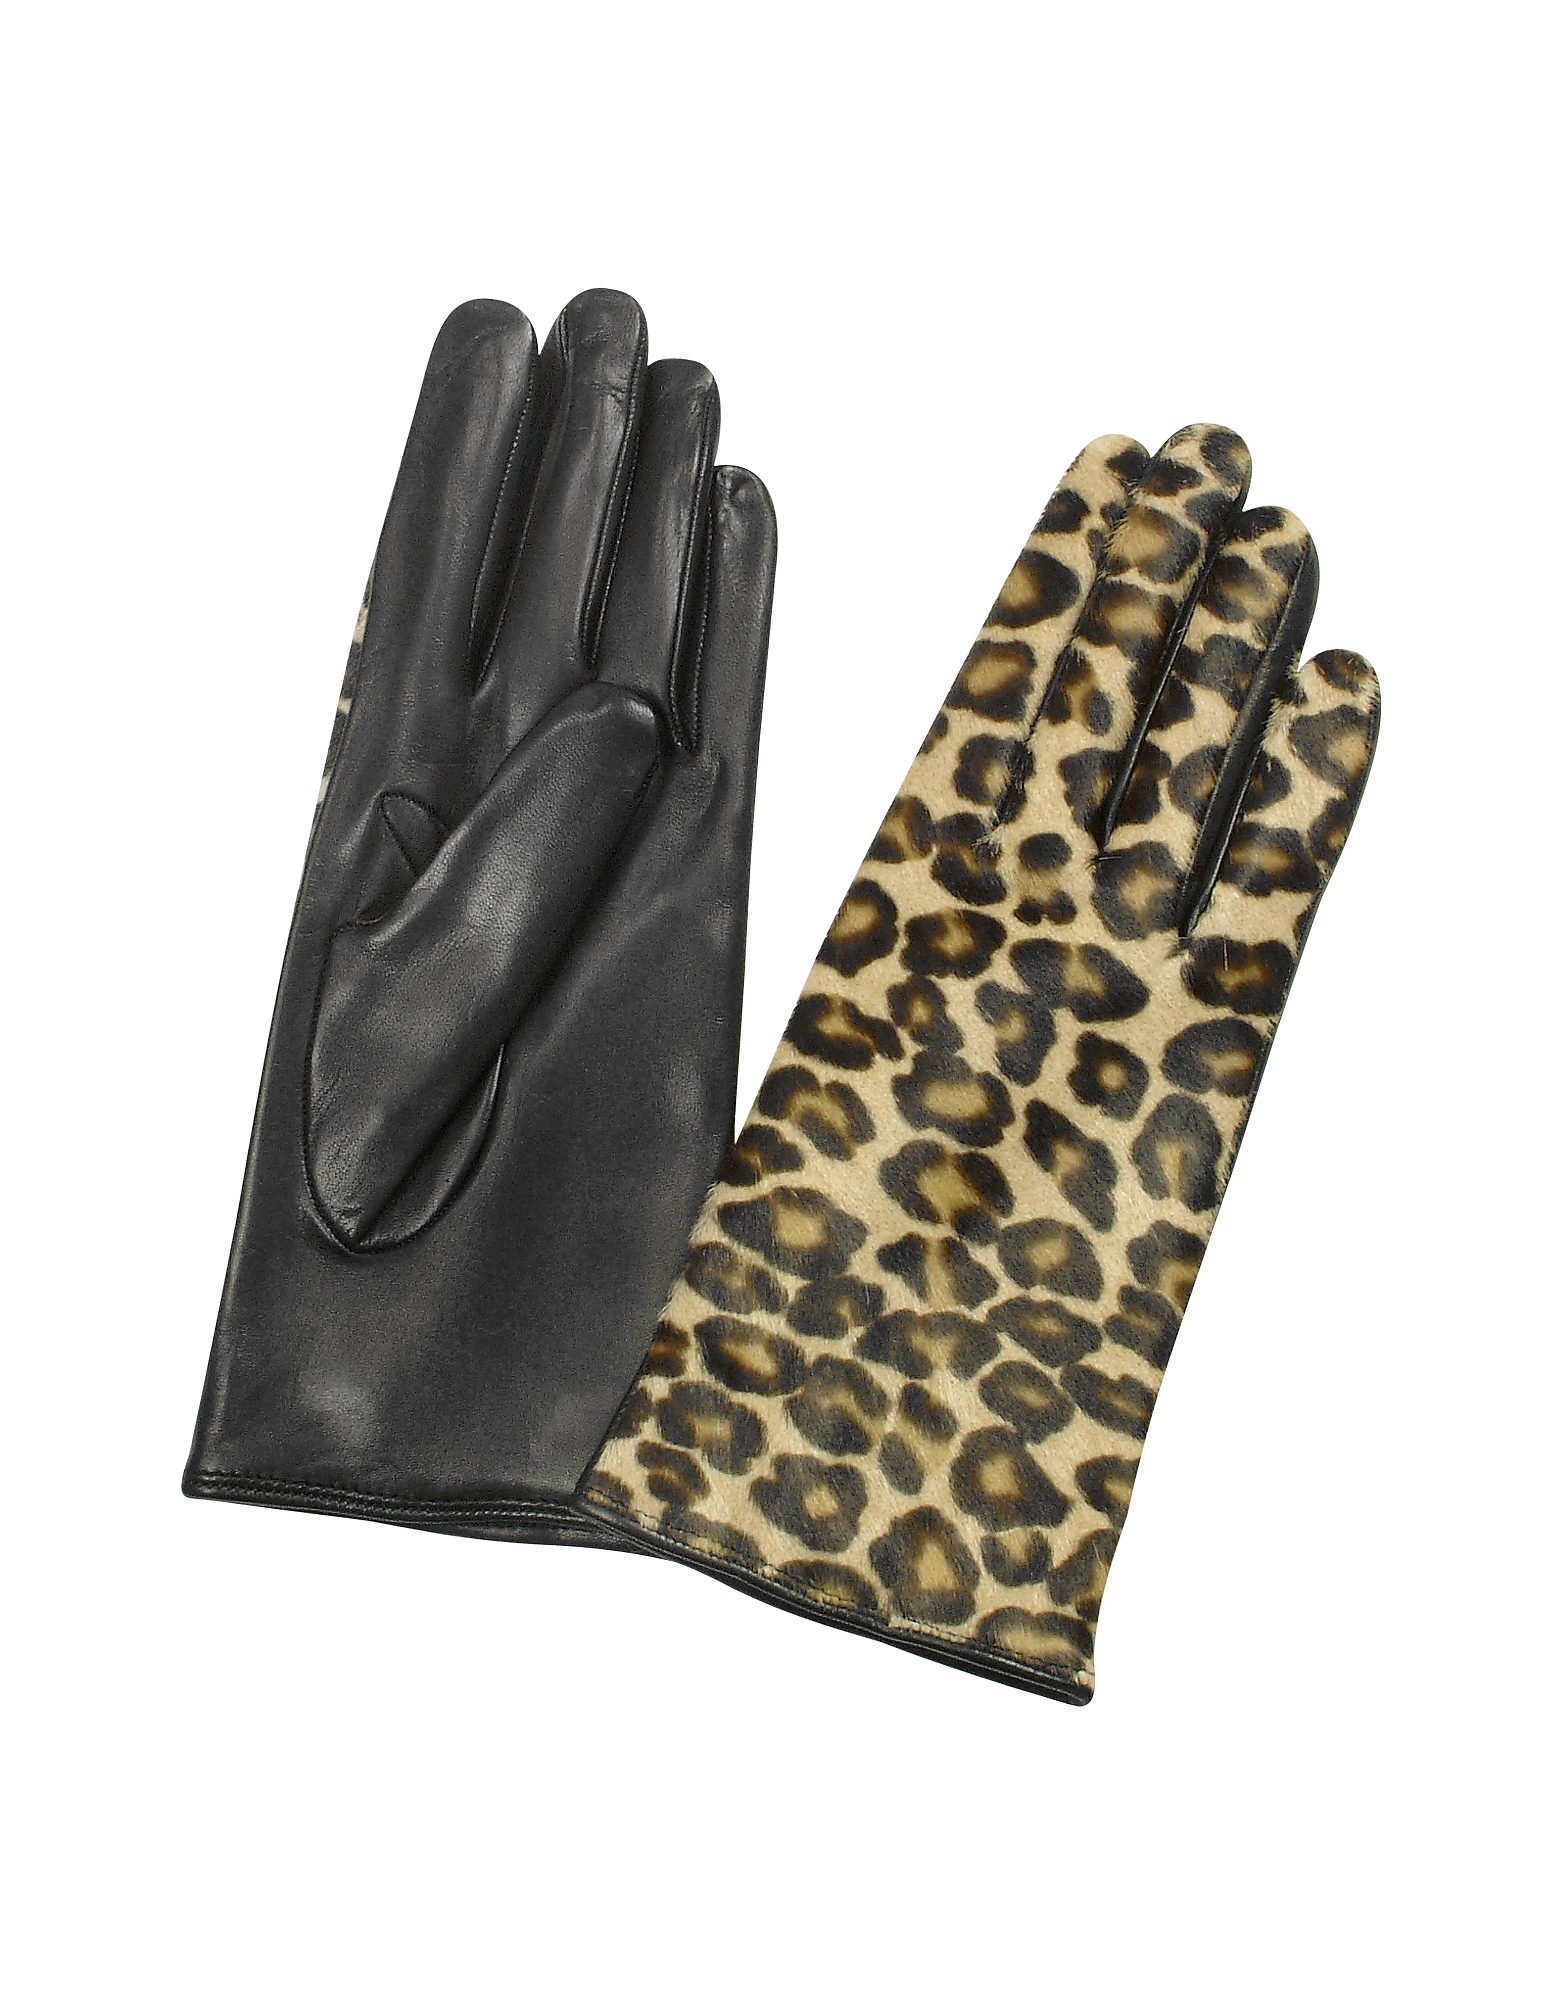 Forzieri Women's Gloves, Women's Leopard Pony Hair and Italian Nappa Leather Gloves